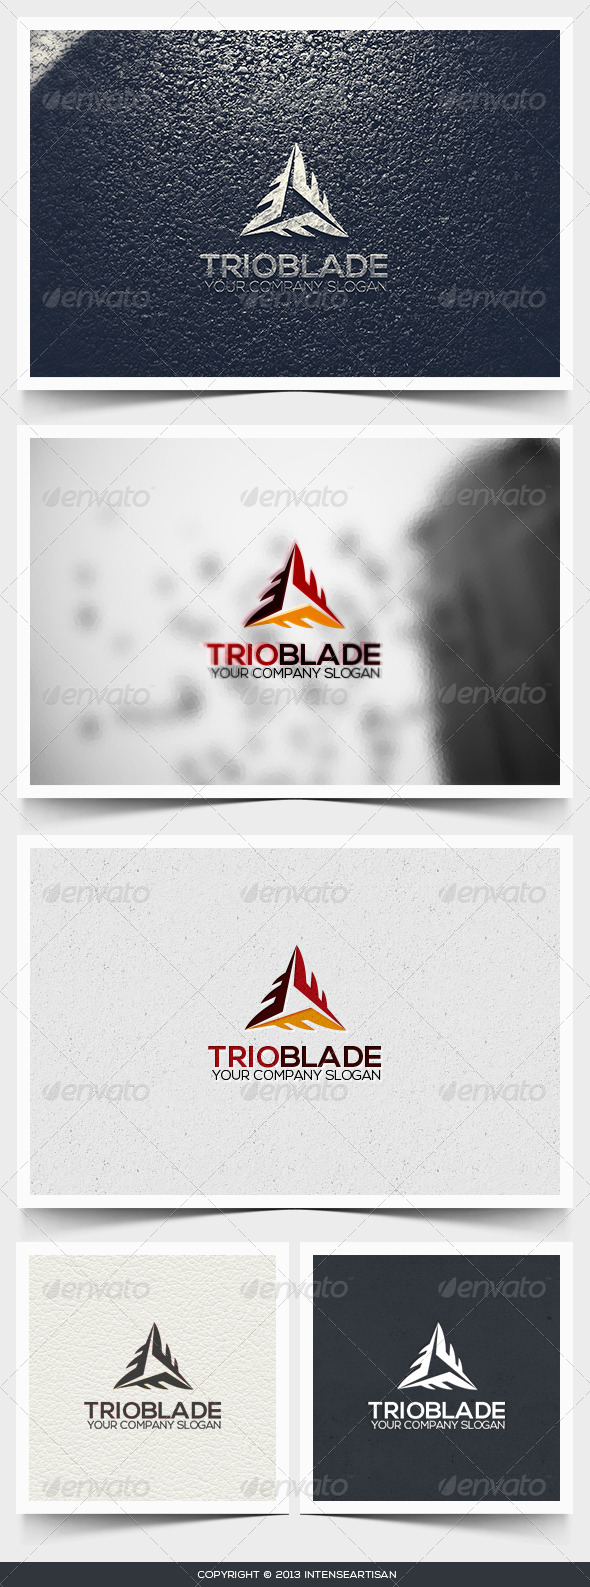 Trioblade Logo Template - Objects Logo Templates